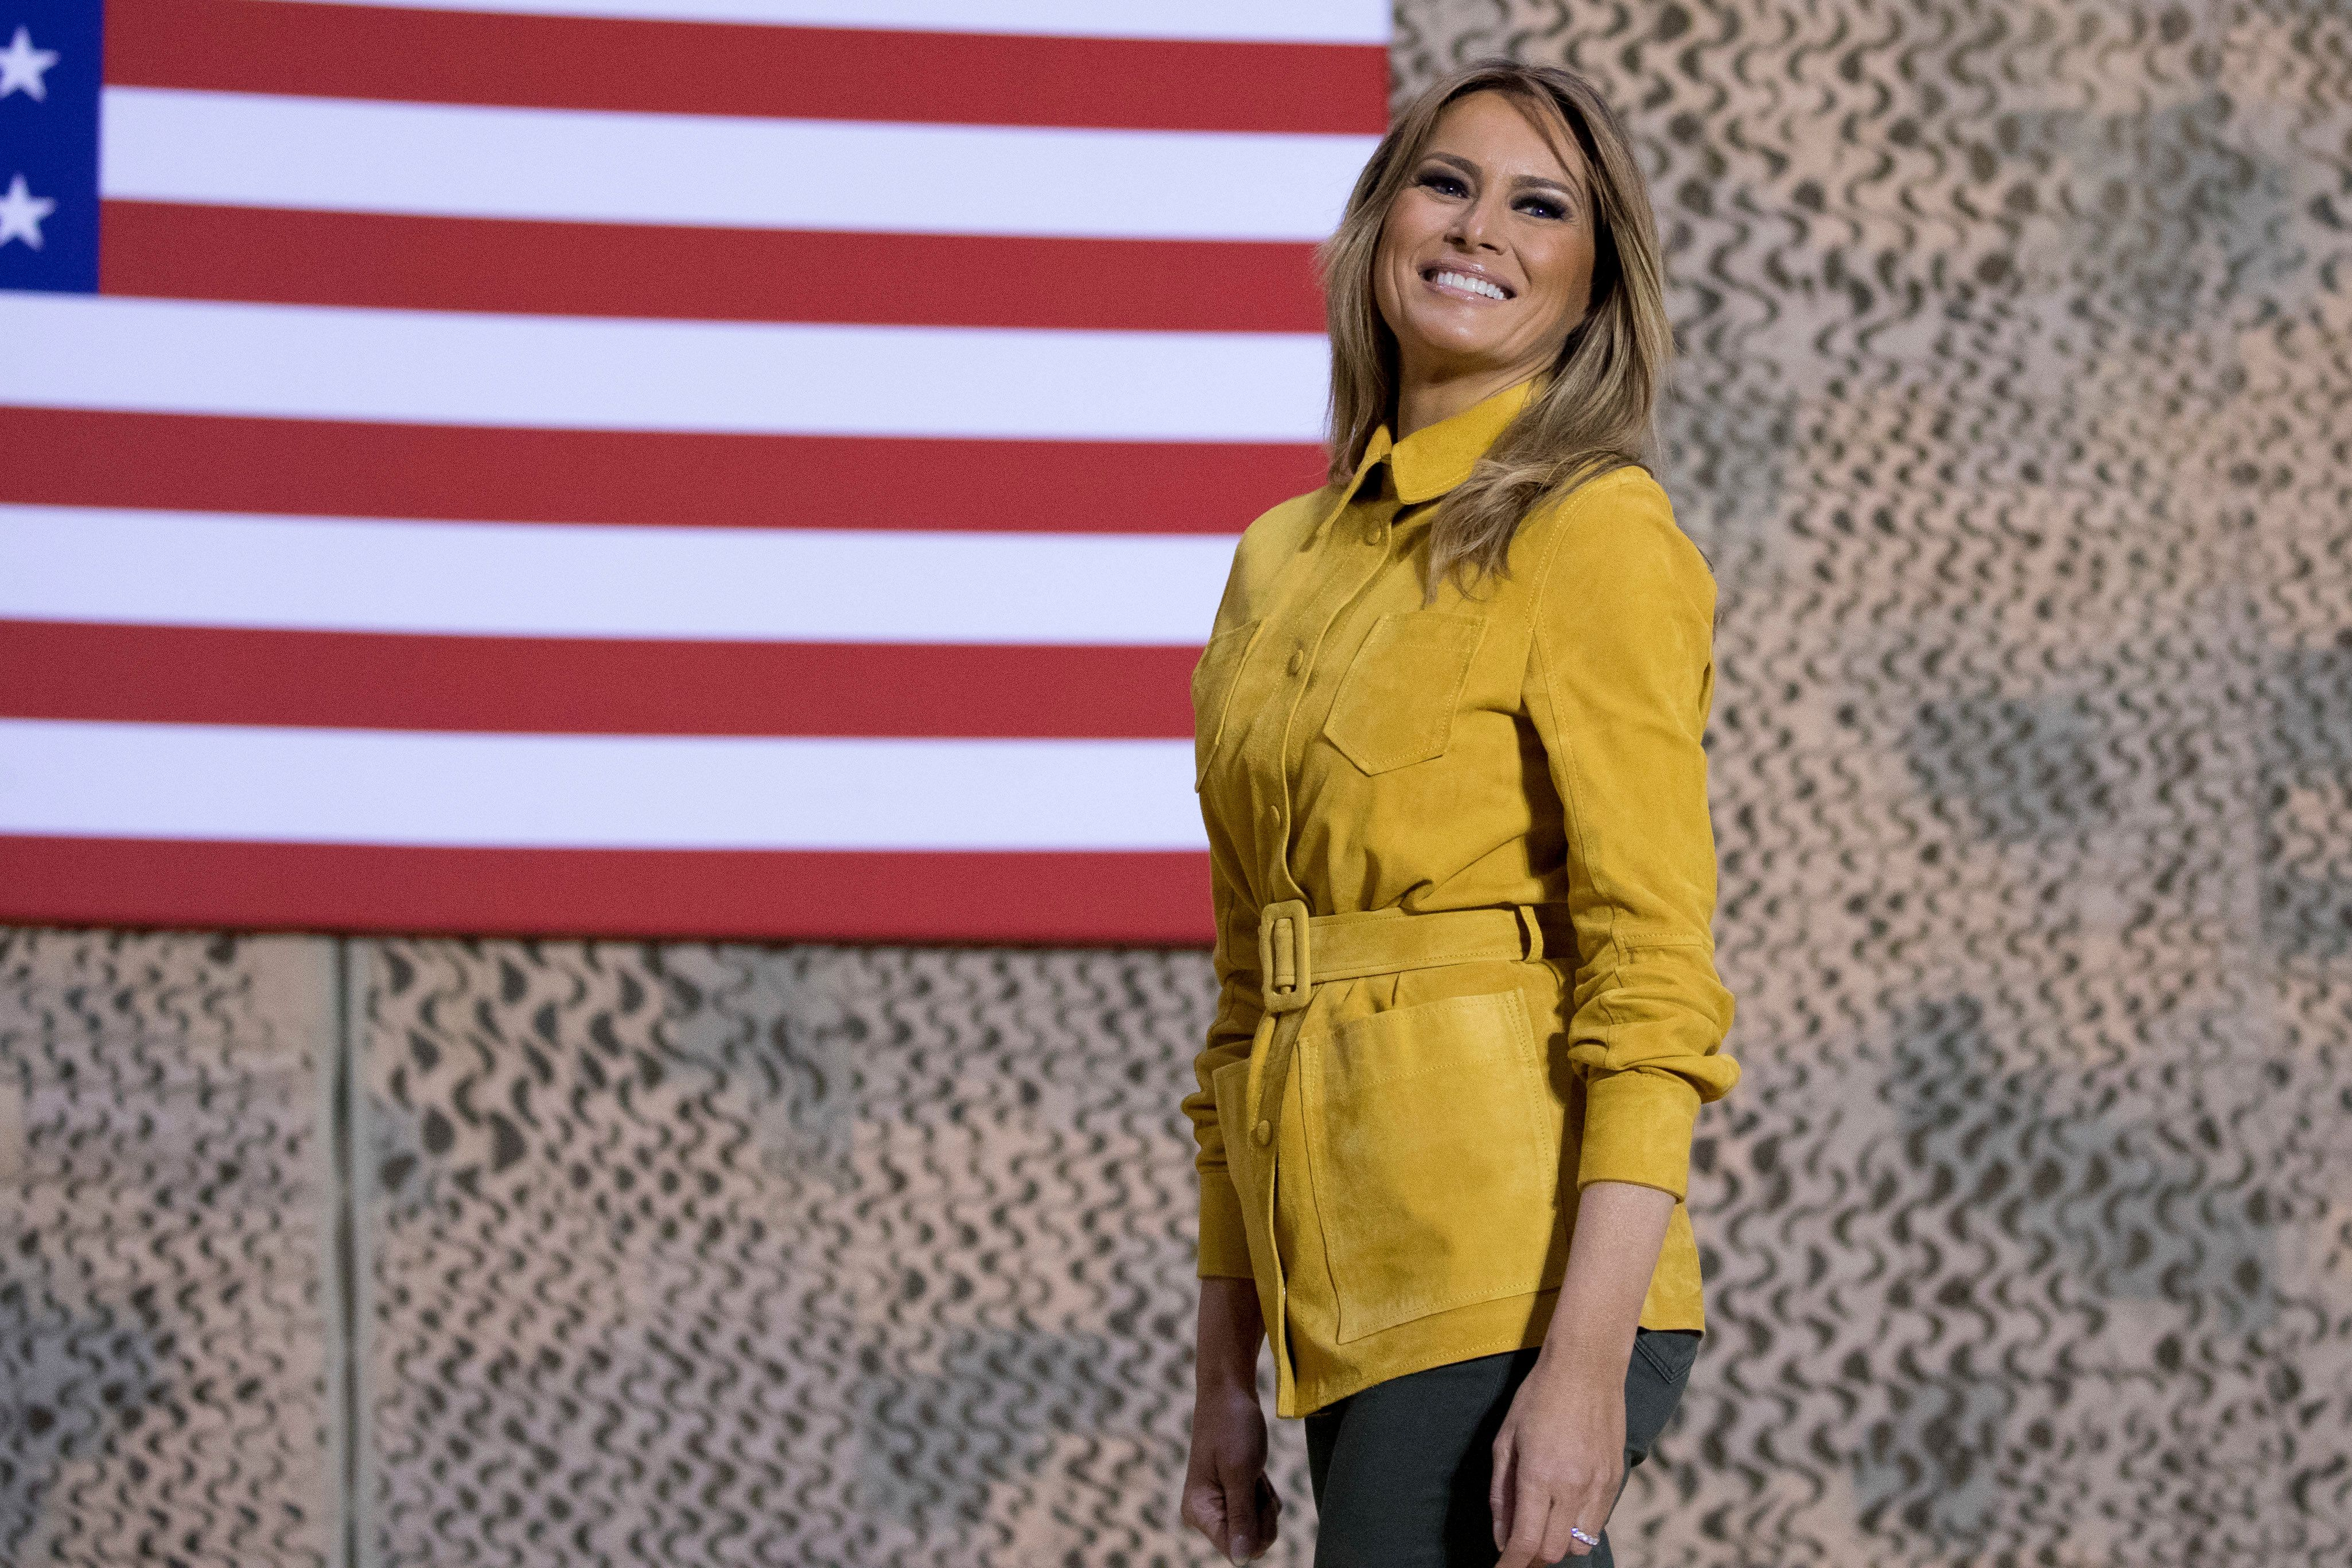 First lady Melania Trump smiles as she steps away from the podium after speaking alongside President Donald Trump at a hangar rally at Al Asad Air Base, Iraq, Wednesday, Dec. 26, 2018. In a surprise trip to Iraq, President Donald Trump on Wednesday defended his decision to withdraw U.S. forces from Syria where they have been helping battle Islamic State militants. (AP Photo/Andrew Harnik)